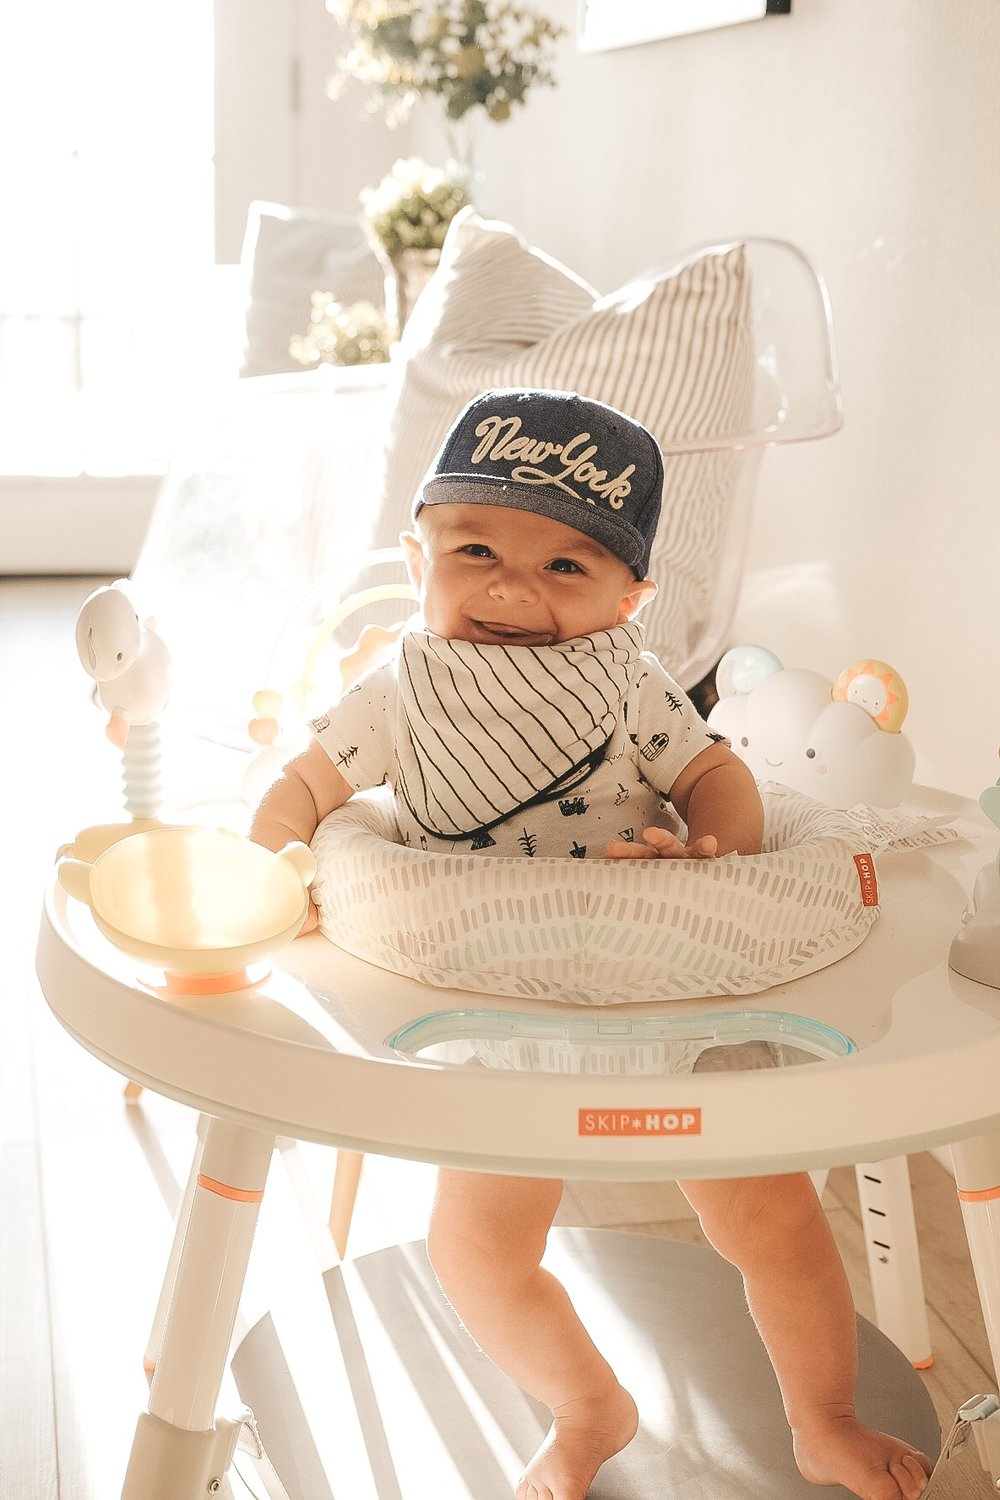 H&M baby flat bill hat.  Skip Hop activity center.  Jett Jones.